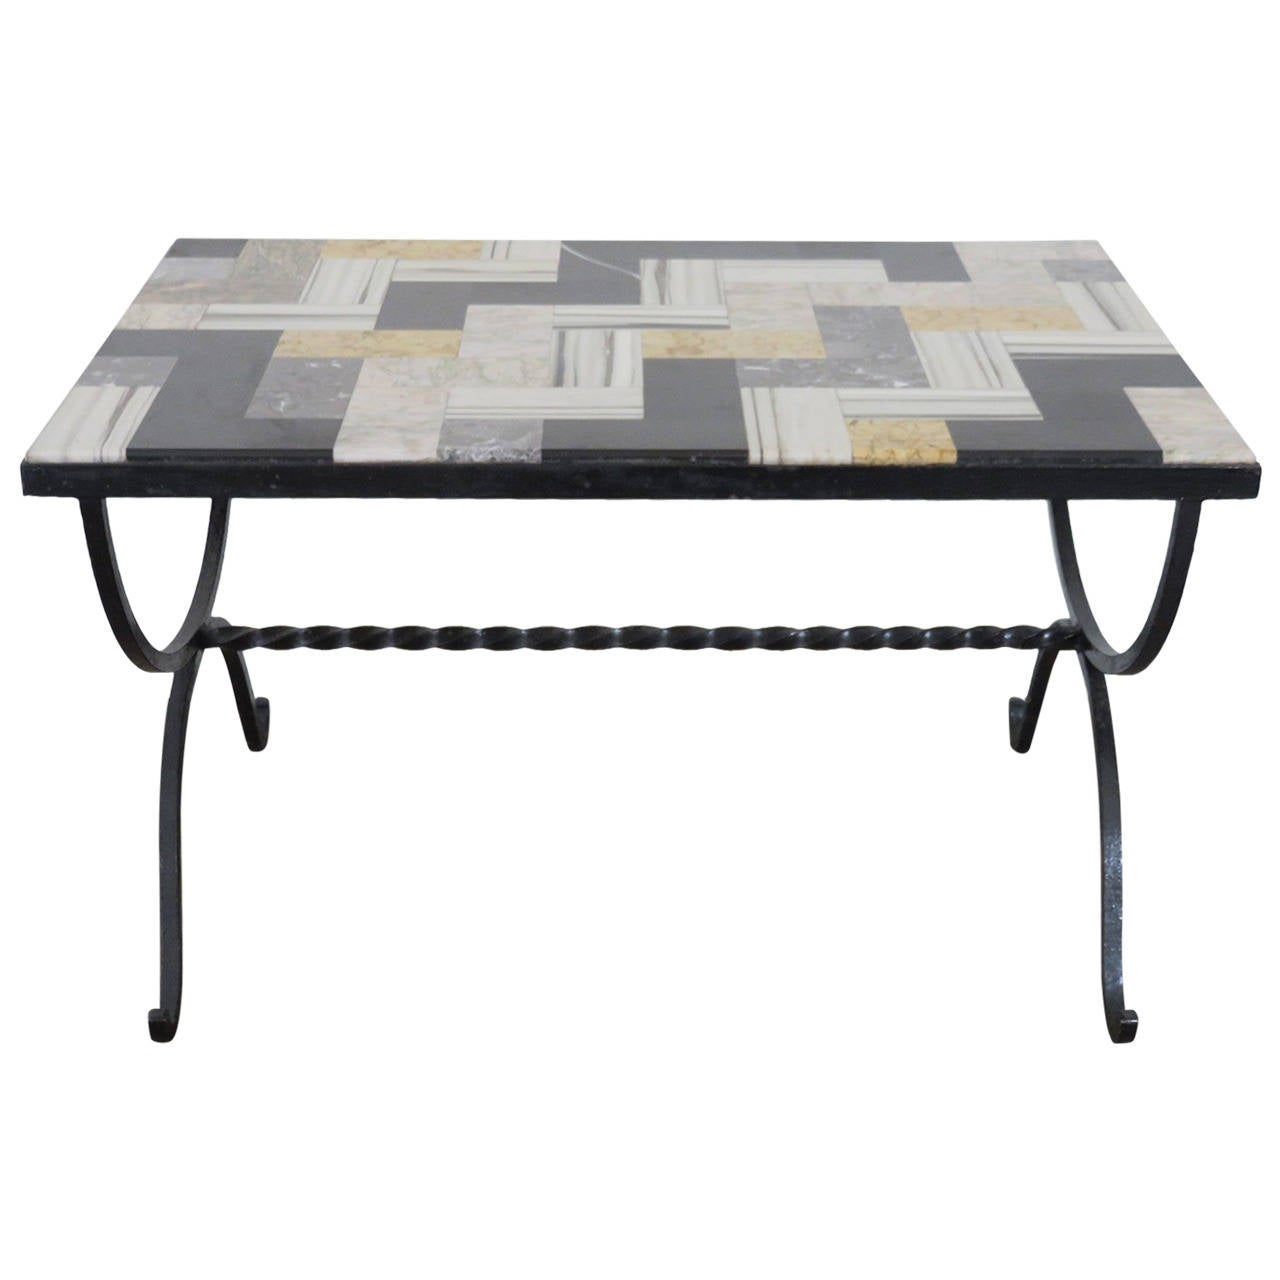 Marble Coffee Table Houston: 1940s Italian Coffee Table With Inlaid Marble Top For Sale